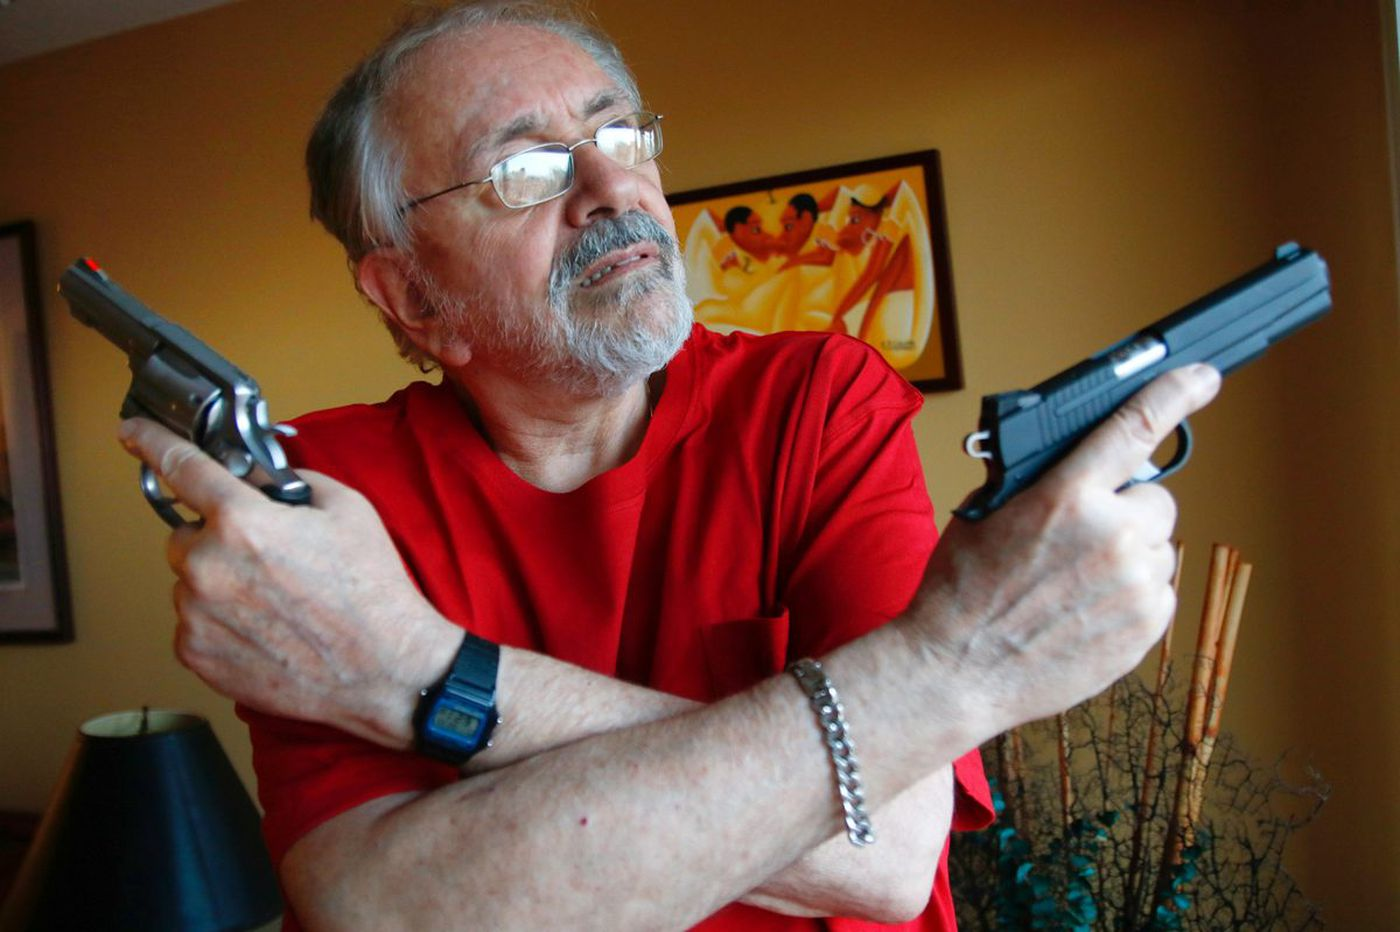 Why getting a gun permit in Philly isn't exactly bang-bang | Stu Bykofsky